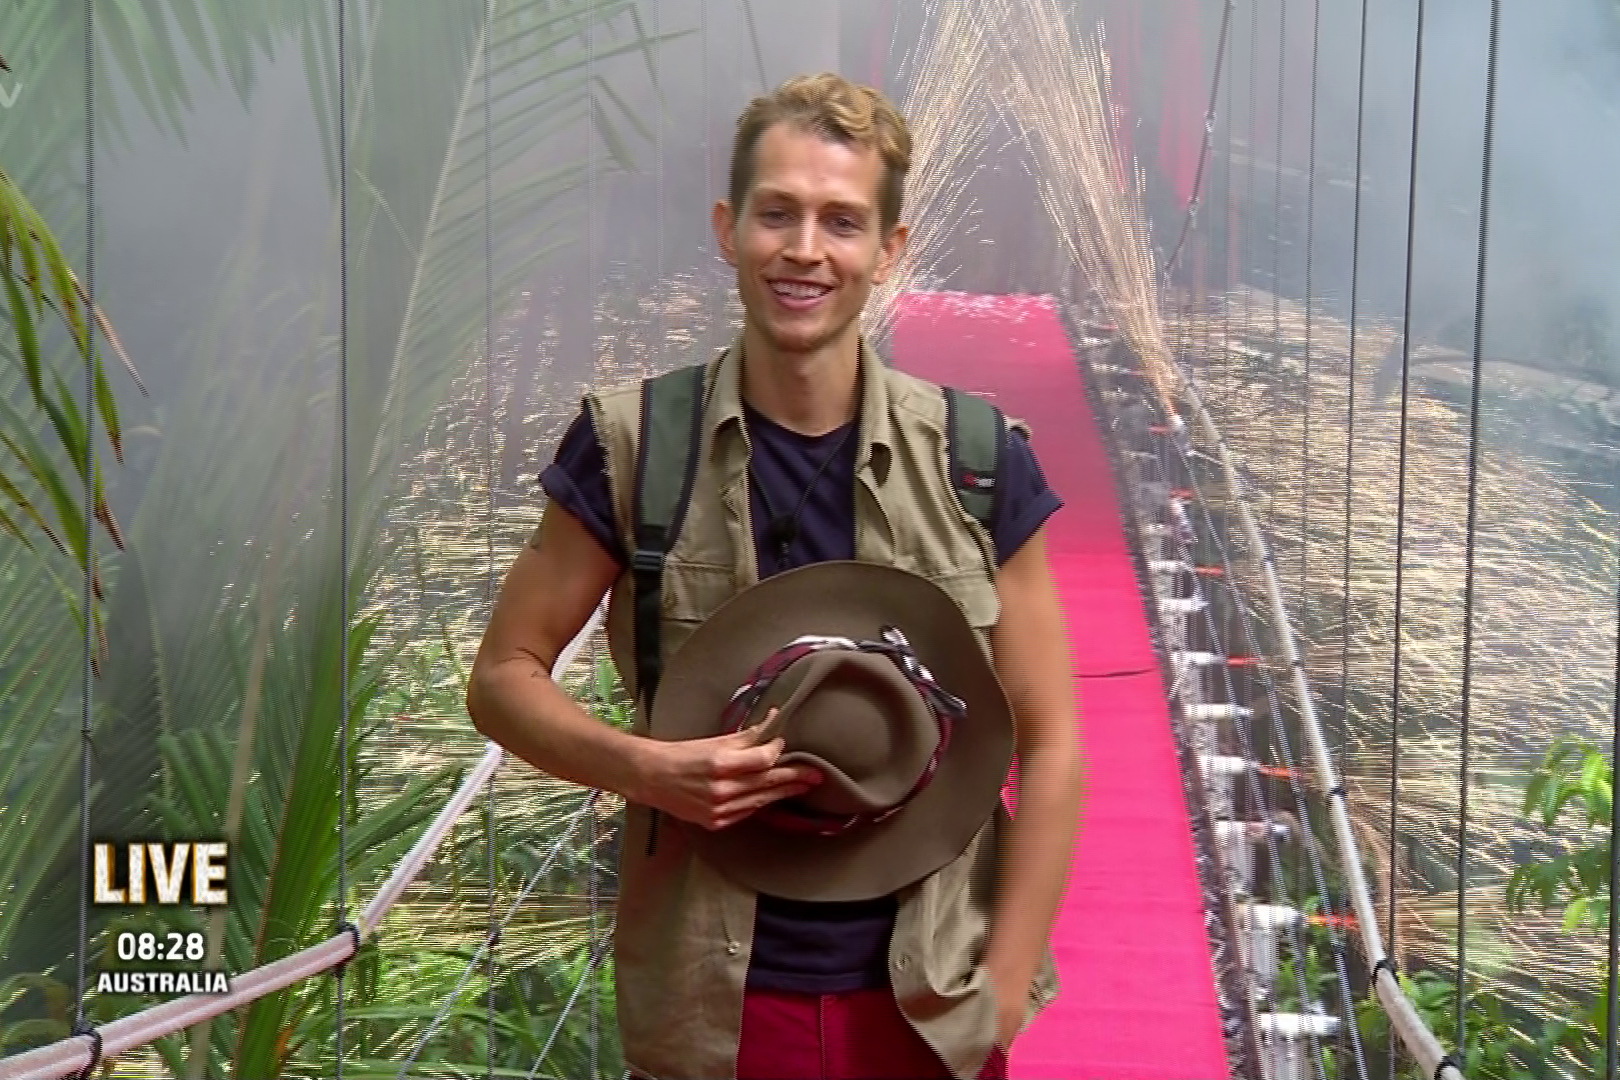 James McVey is evicted from I'm A Celebrity just two days before the final